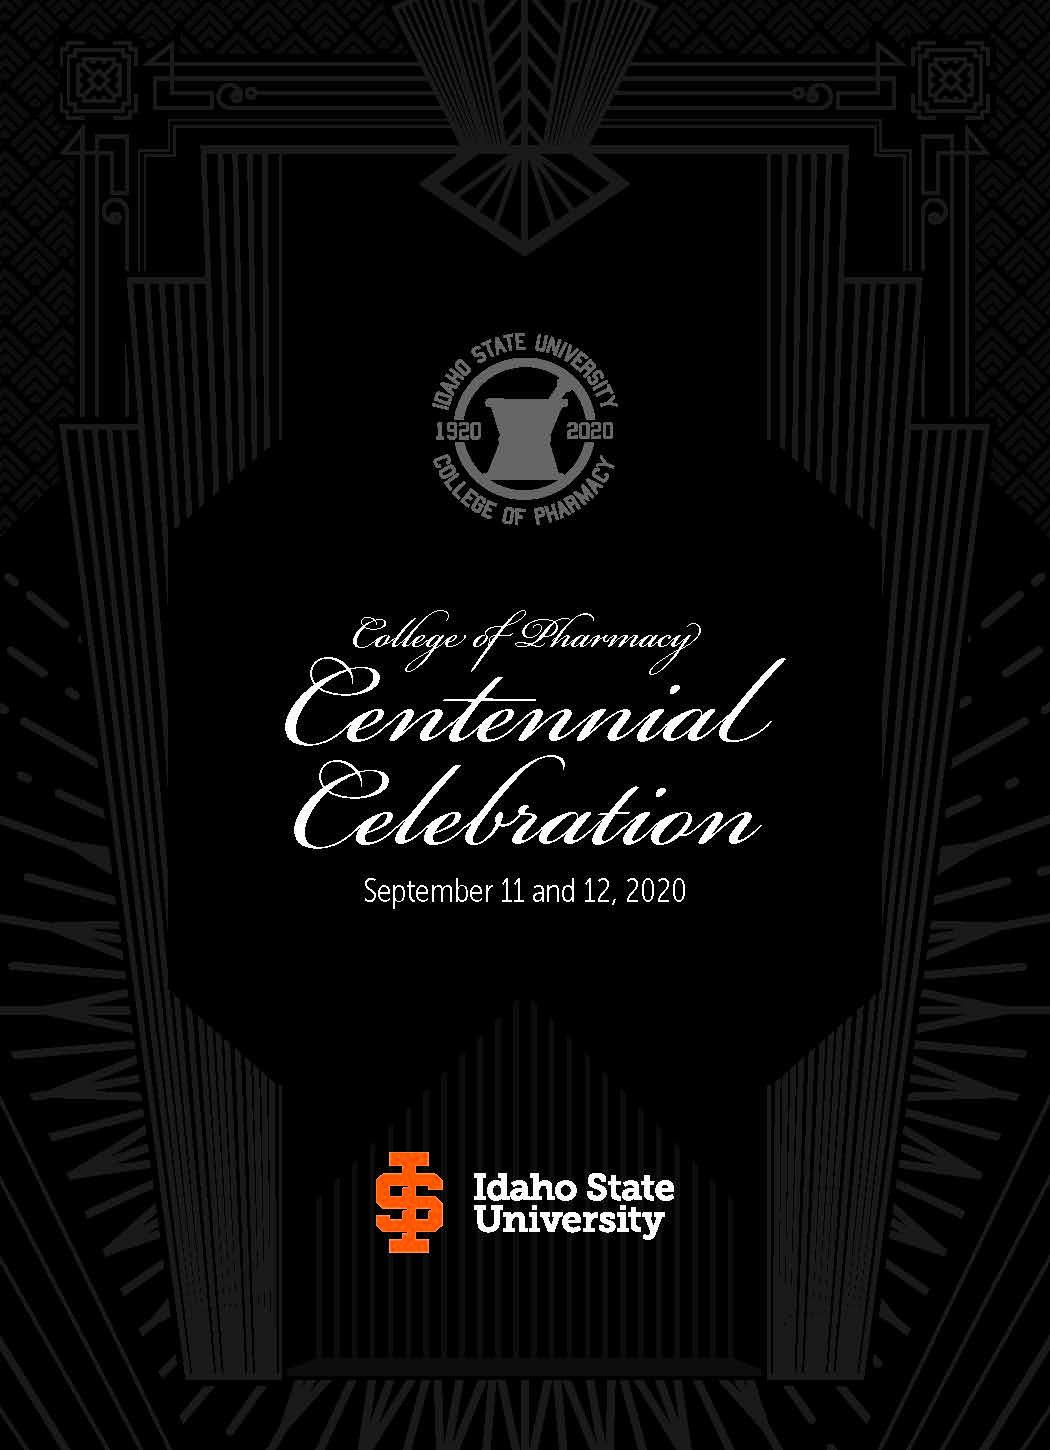 1920 to 2020, College of Pharmacy Centennial Celebration, September 11 & 12, 2020, Idaho State University